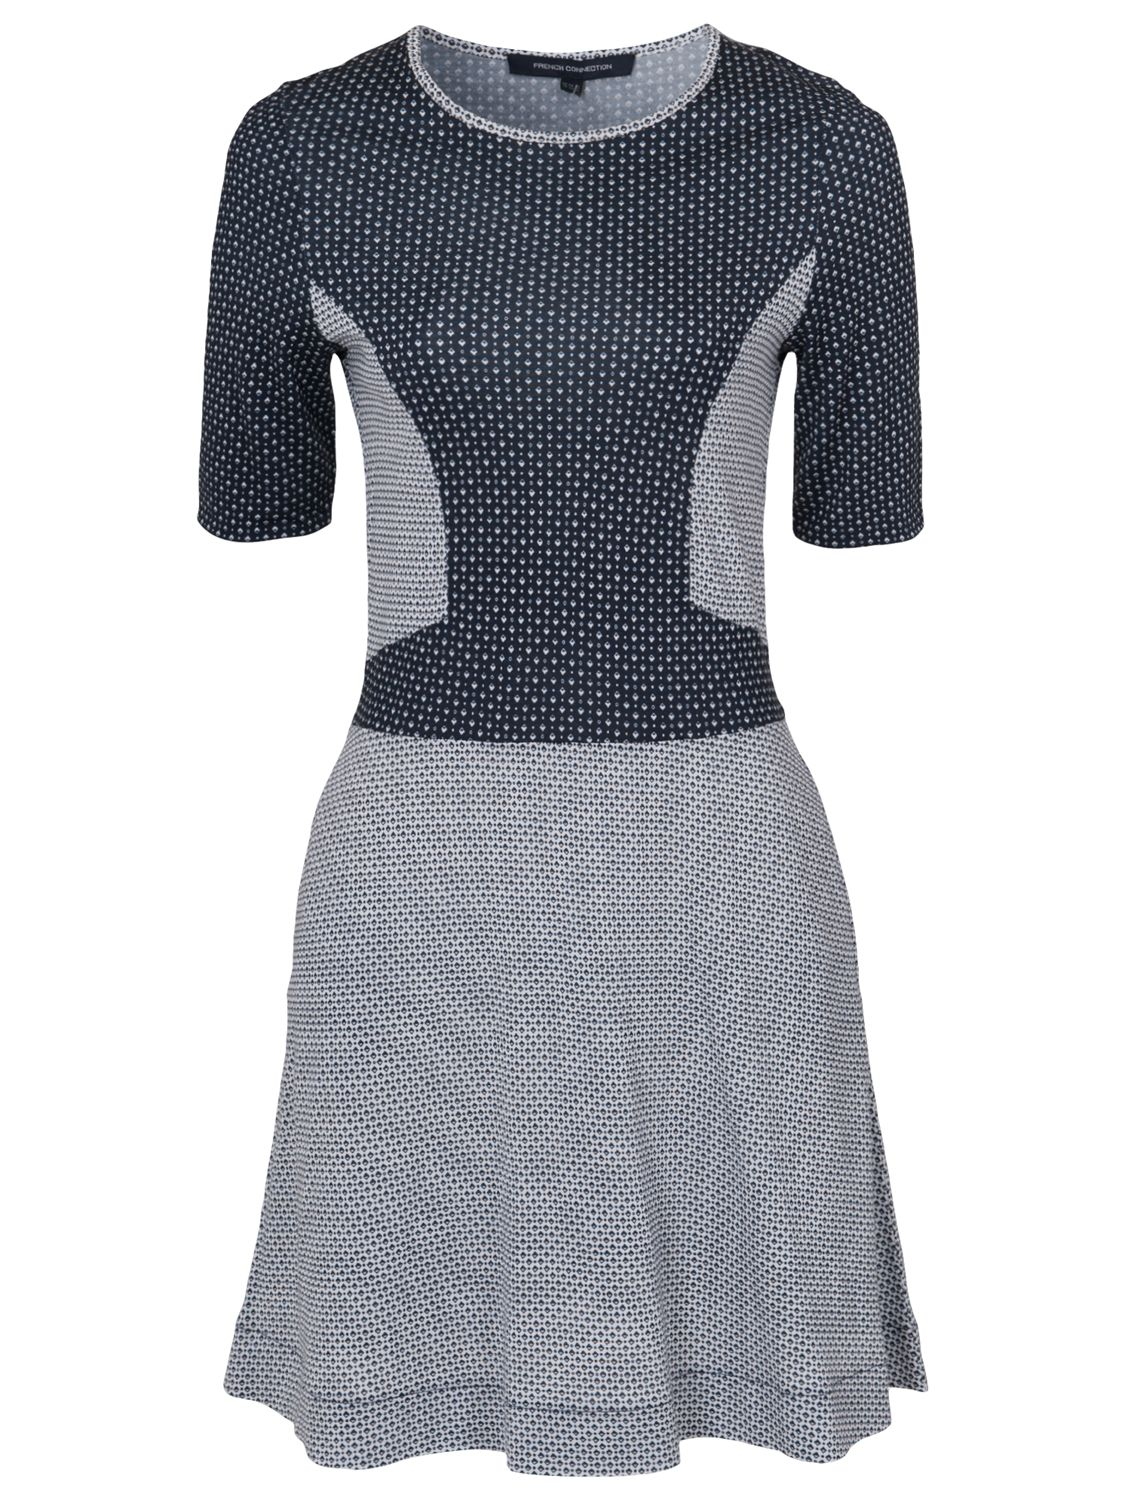 french connection mini modern mosaic dress white/multi, french, connection, mini, modern, mosaic, dress, white/multi, french connection, 6|16|10|14|8|12, clearance, womenswear offers, womens dresses offers, women, inactive womenswear, new reductions, womens dresses, special offers, 1581375